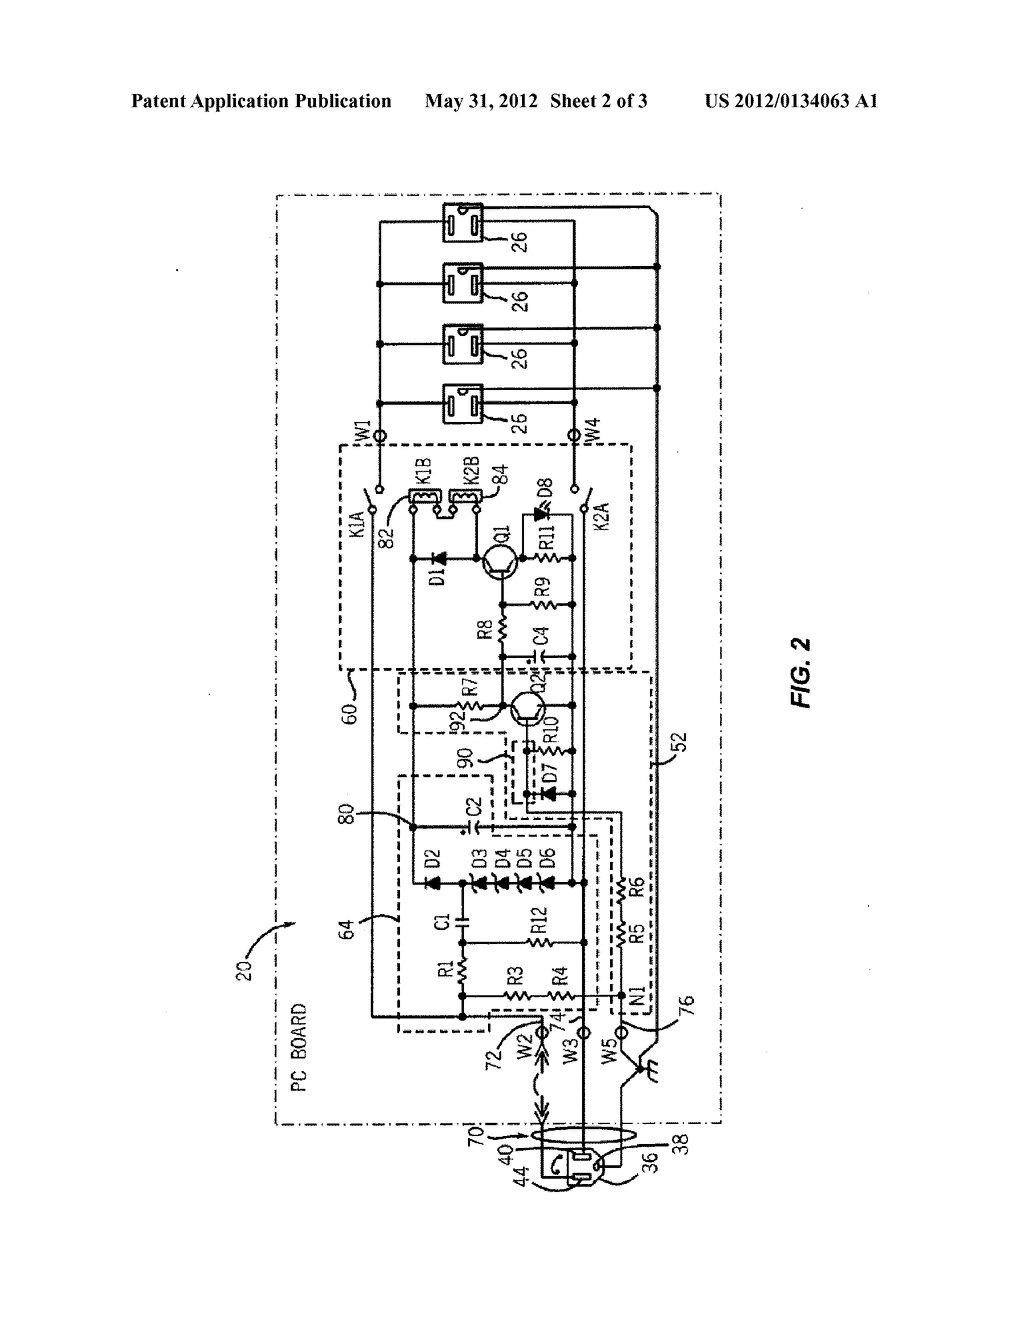 RELOCATABLE POWER TAP WITH SURGE PROTECTOR - diagram ... on valve schematic, ballast schematic, ups schematic, telephone schematic, amplifier schematic, tv schematic, rectifier schematic, hard drive schematic, contactor schematic, door schematic, led schematic, power supply schematic, circuit breaker schematic, electronics schematic, remote control schematic, keyboard schematic, capacitor schematic, compressor schematic, power conditioner schematic, speakers schematic,